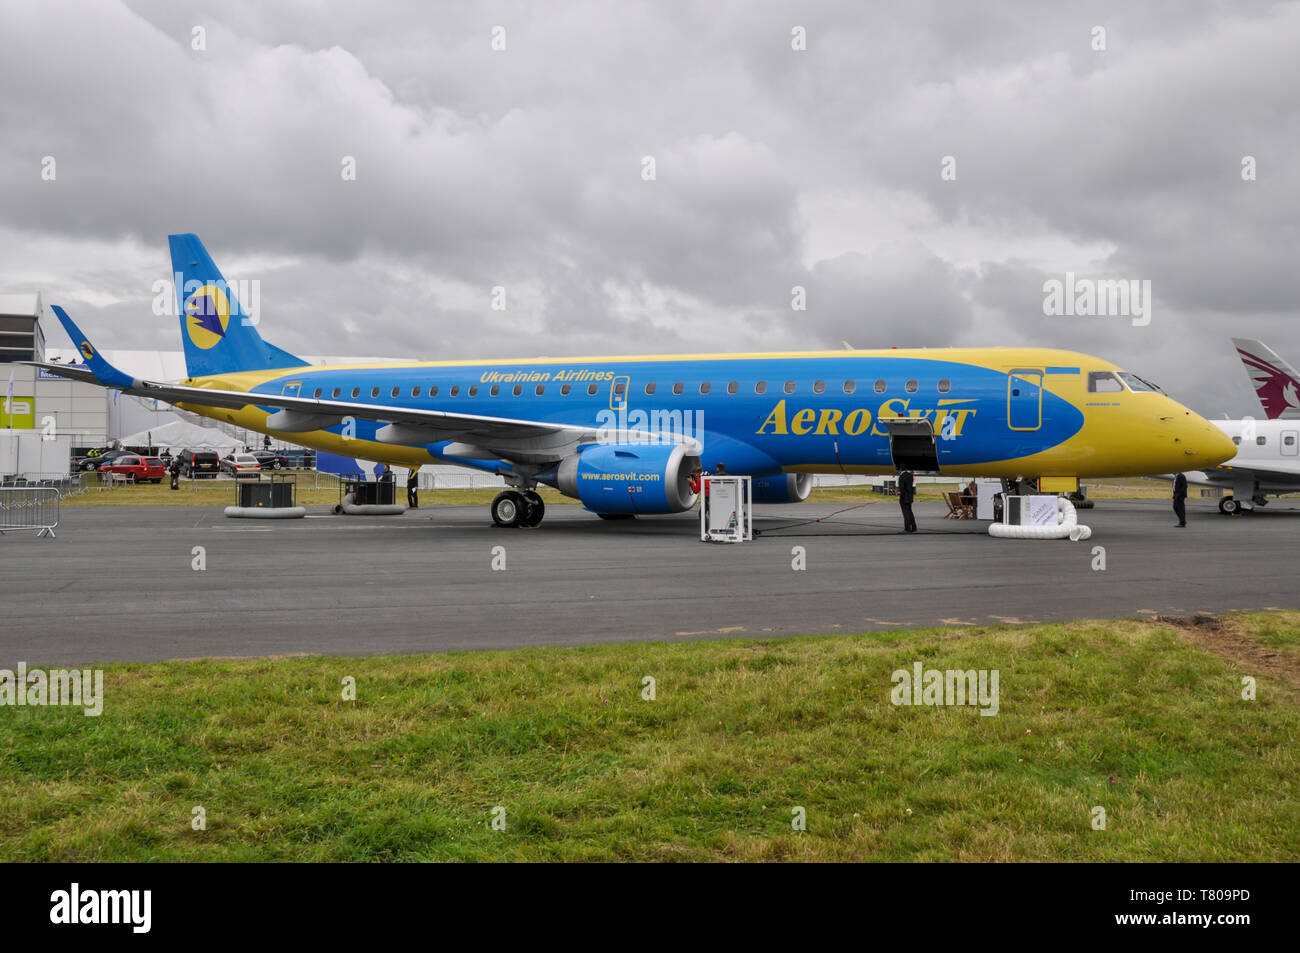 Aero Svit Ukrainian Airlines Embraer 190 jet airliner plane at Farnborough International Airshow trade show. Industry show. Space for copy - Stock Image